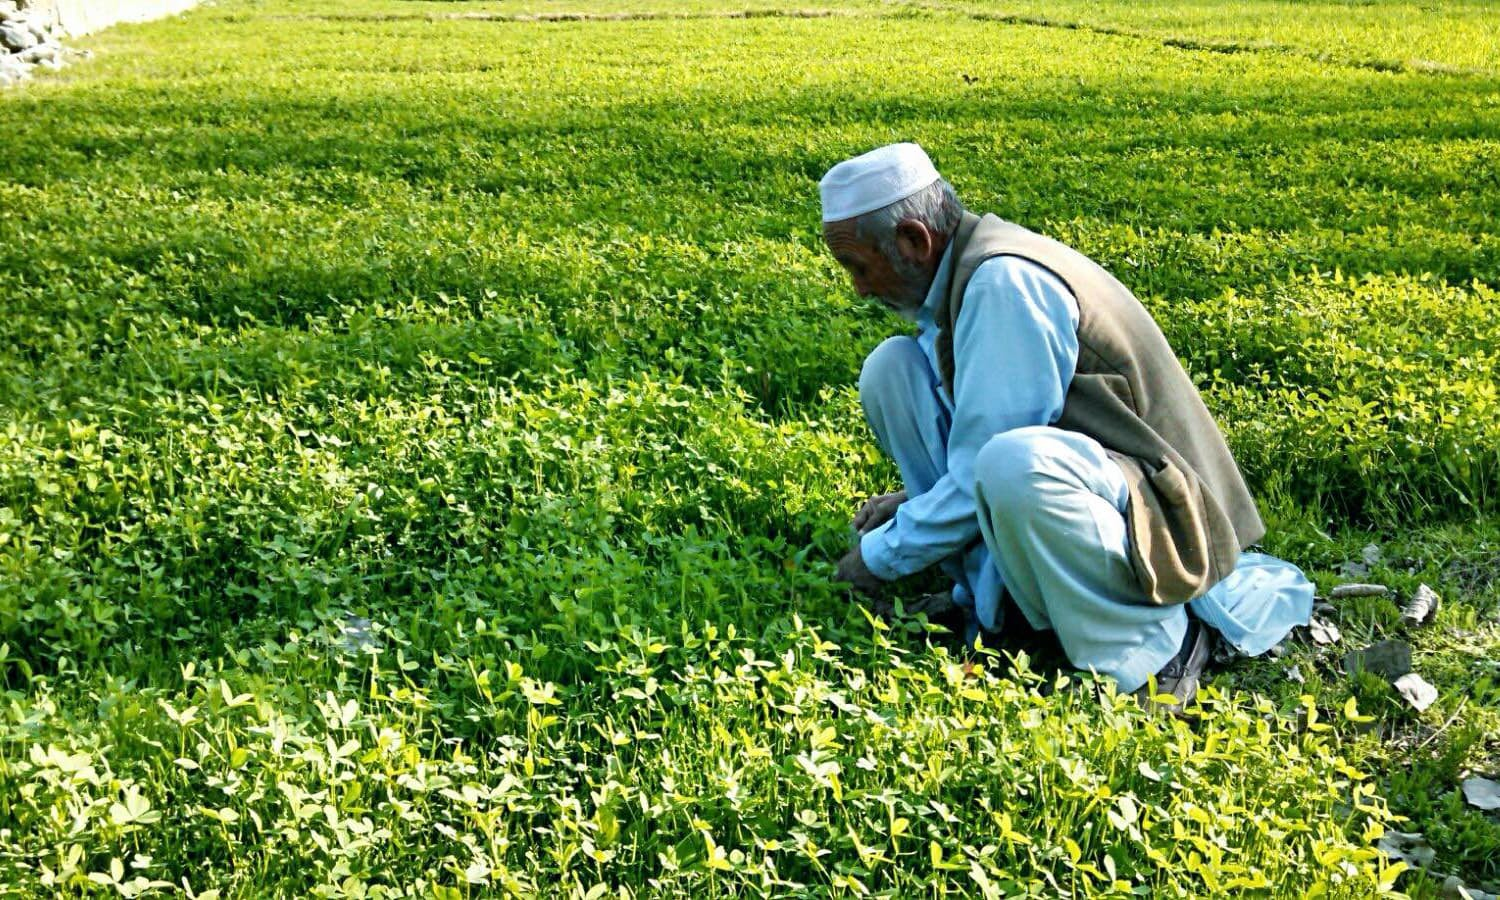 Loans to farmers do work if the approach is right